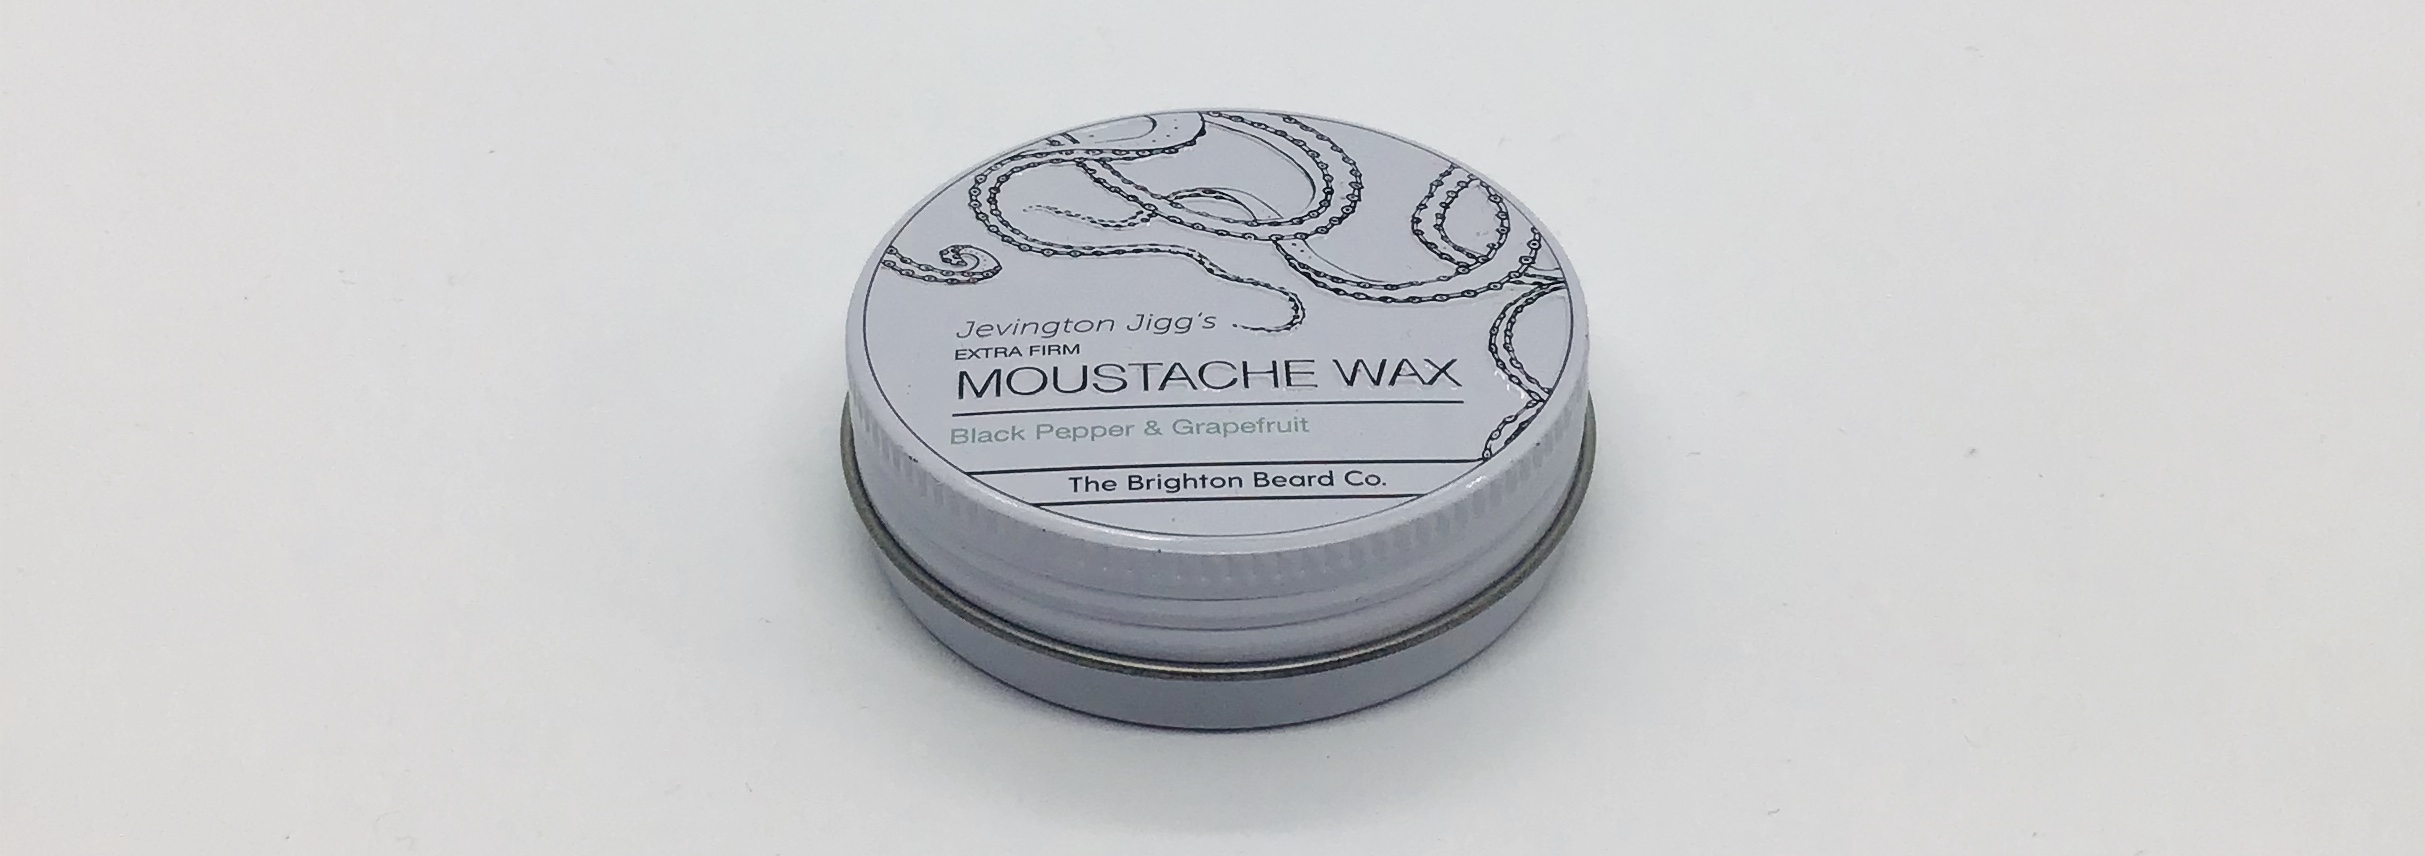 Moustache wax extra firm grapefruit & blackpepper